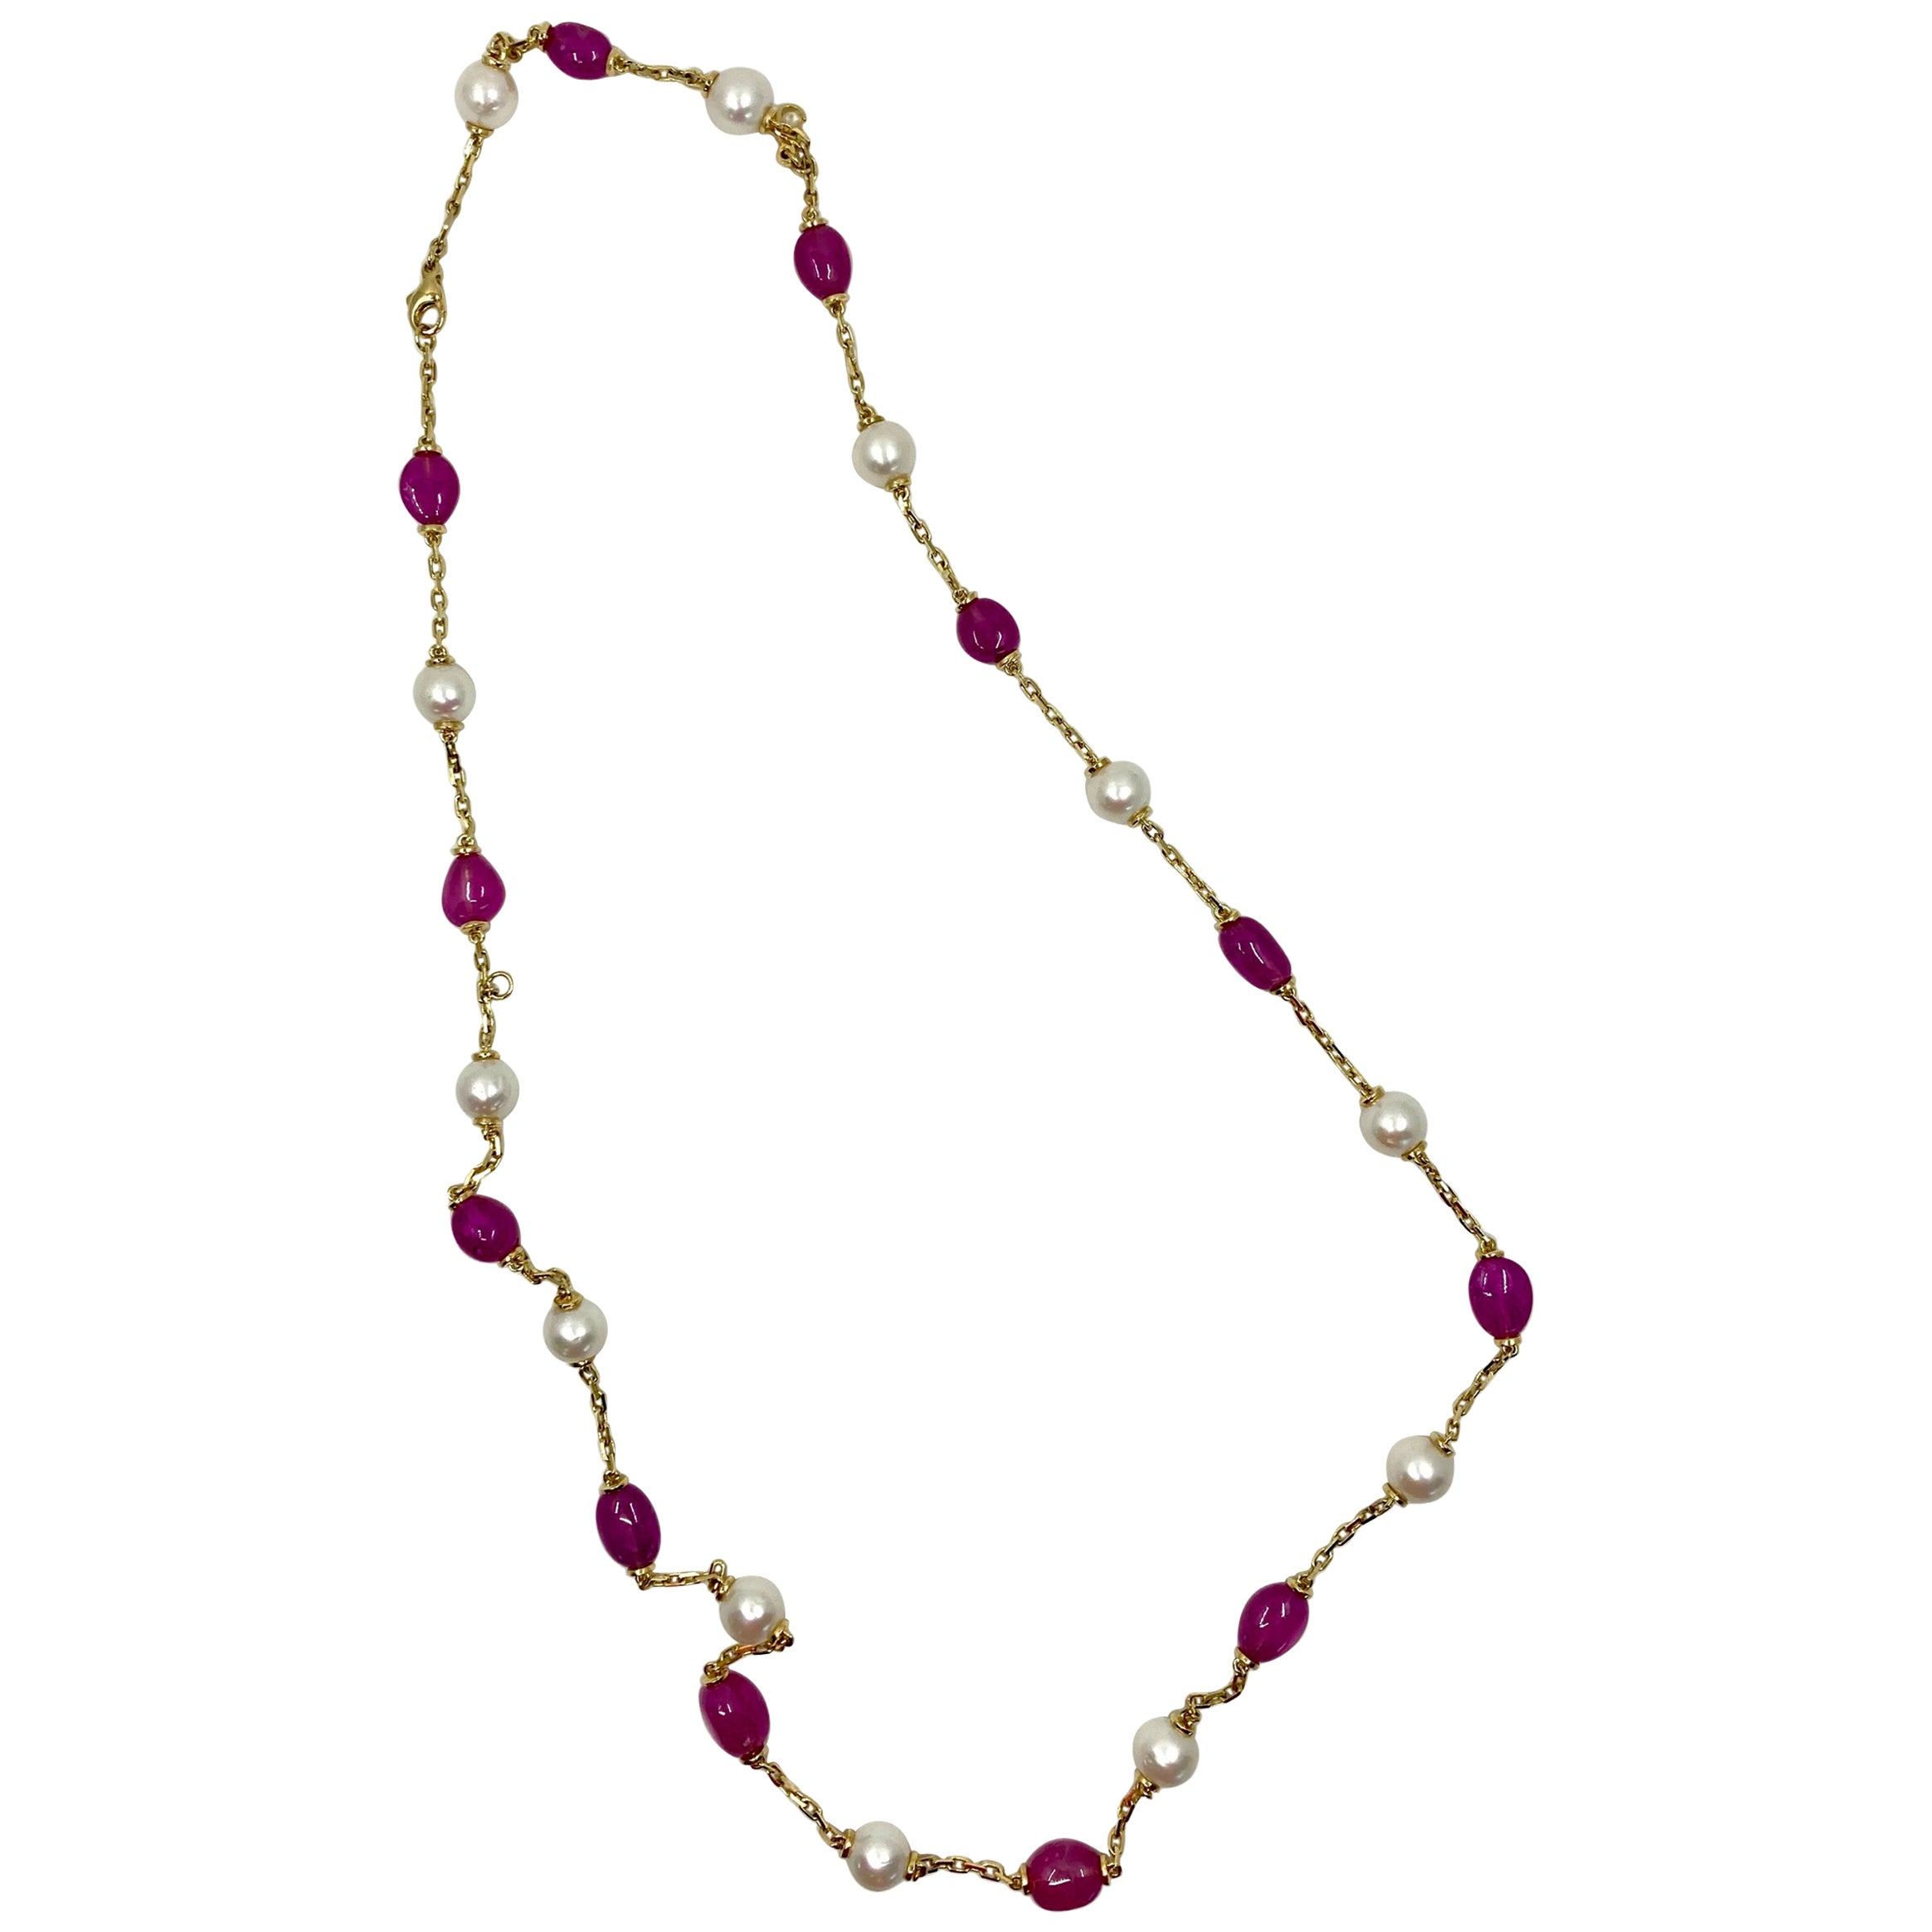 18 Karat Gold Pink Sapphires and Pearls Necklace